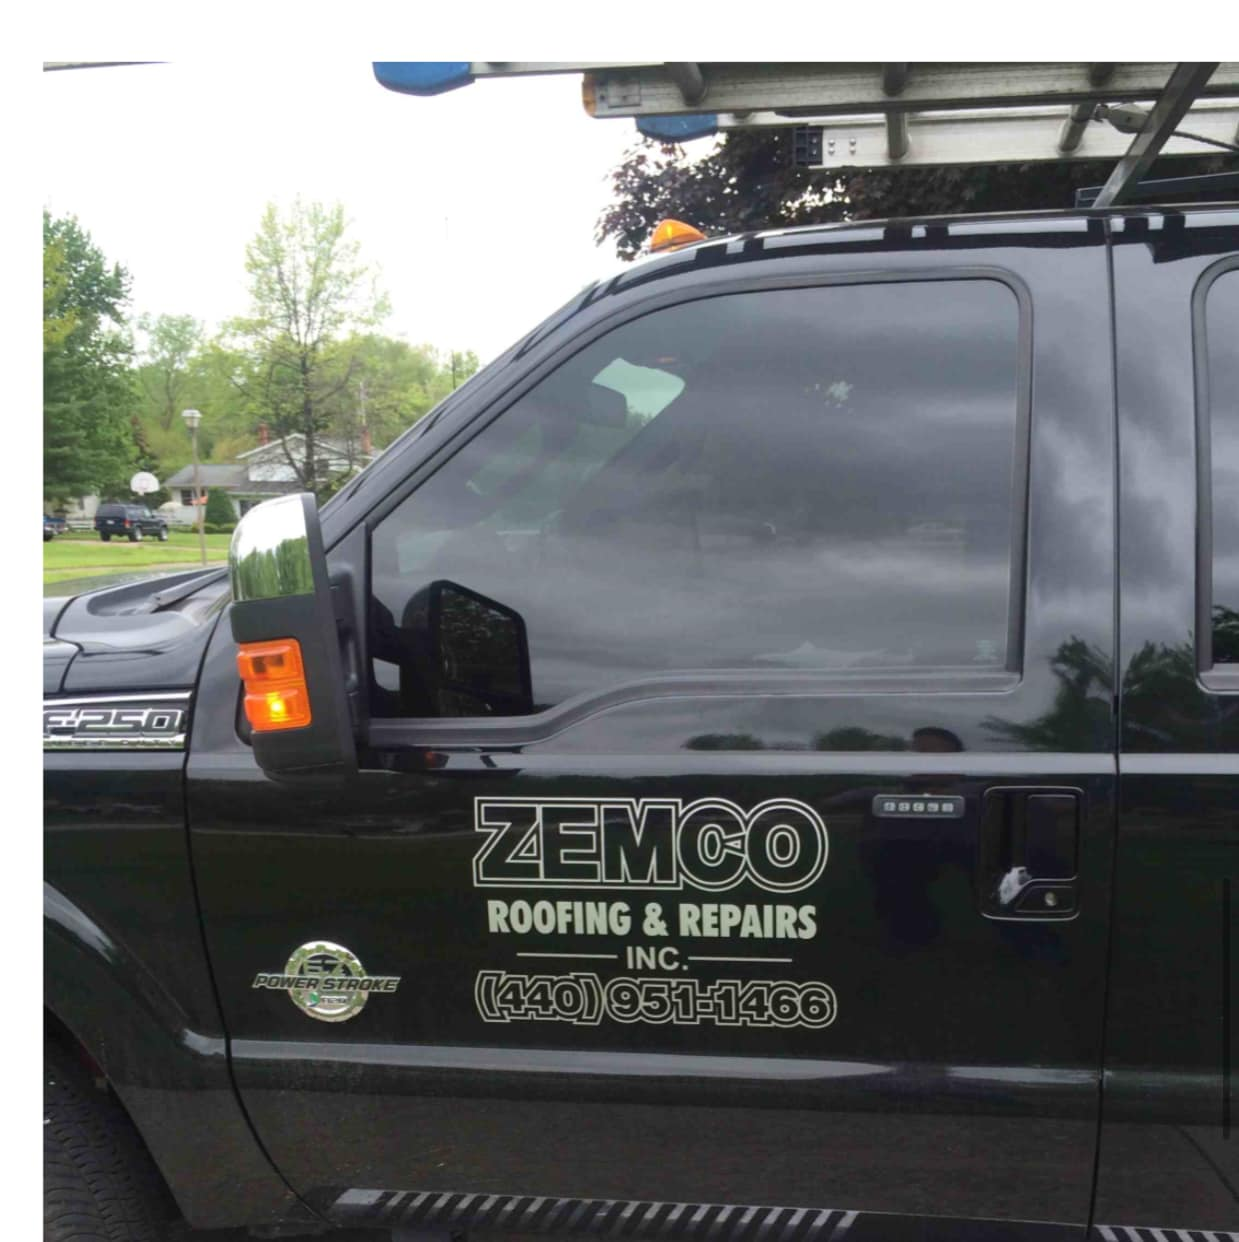 Zemco Roofing & Repairs Inc